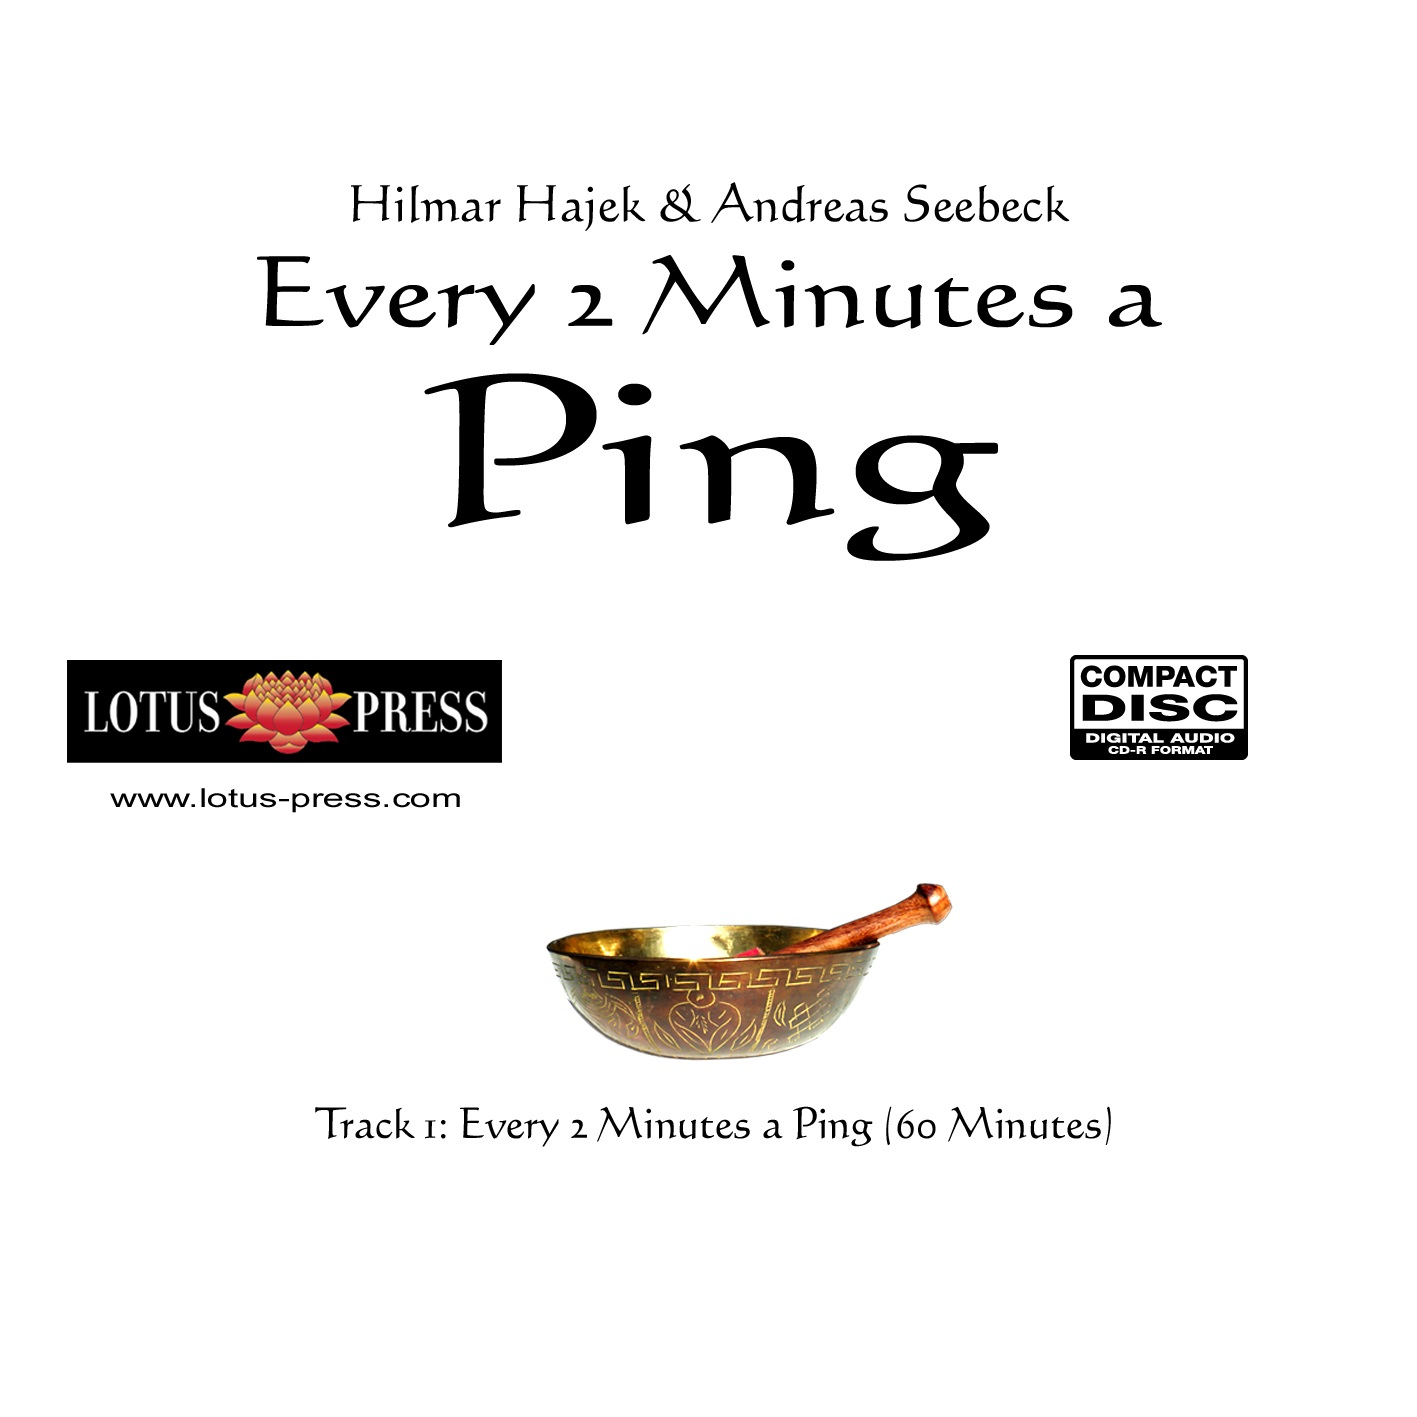 Every 2 Minutes a Ping